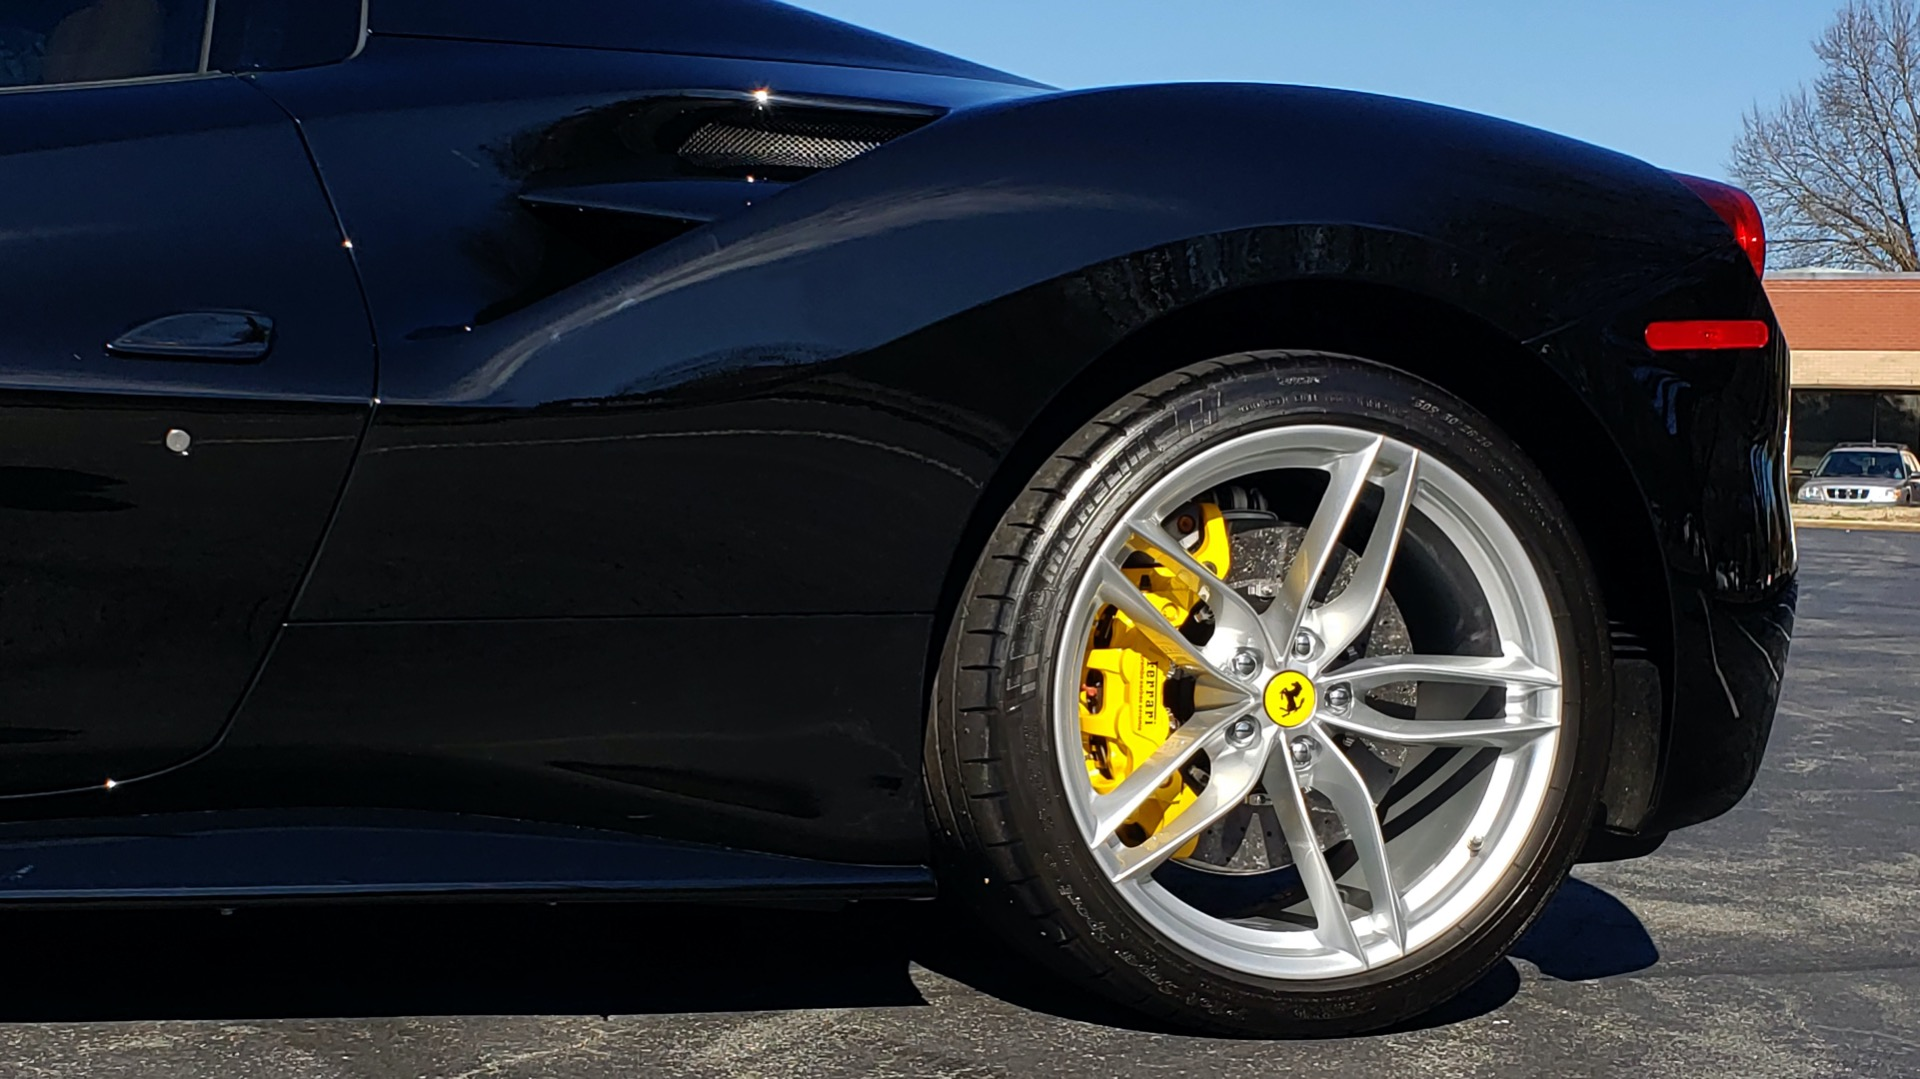 Used 2017 Ferrari 488 Spider SUSP LFT / JBL SND / SPRT EXH / F1 TRANS for sale $315,000 at Formula Imports in Charlotte NC 28227 11